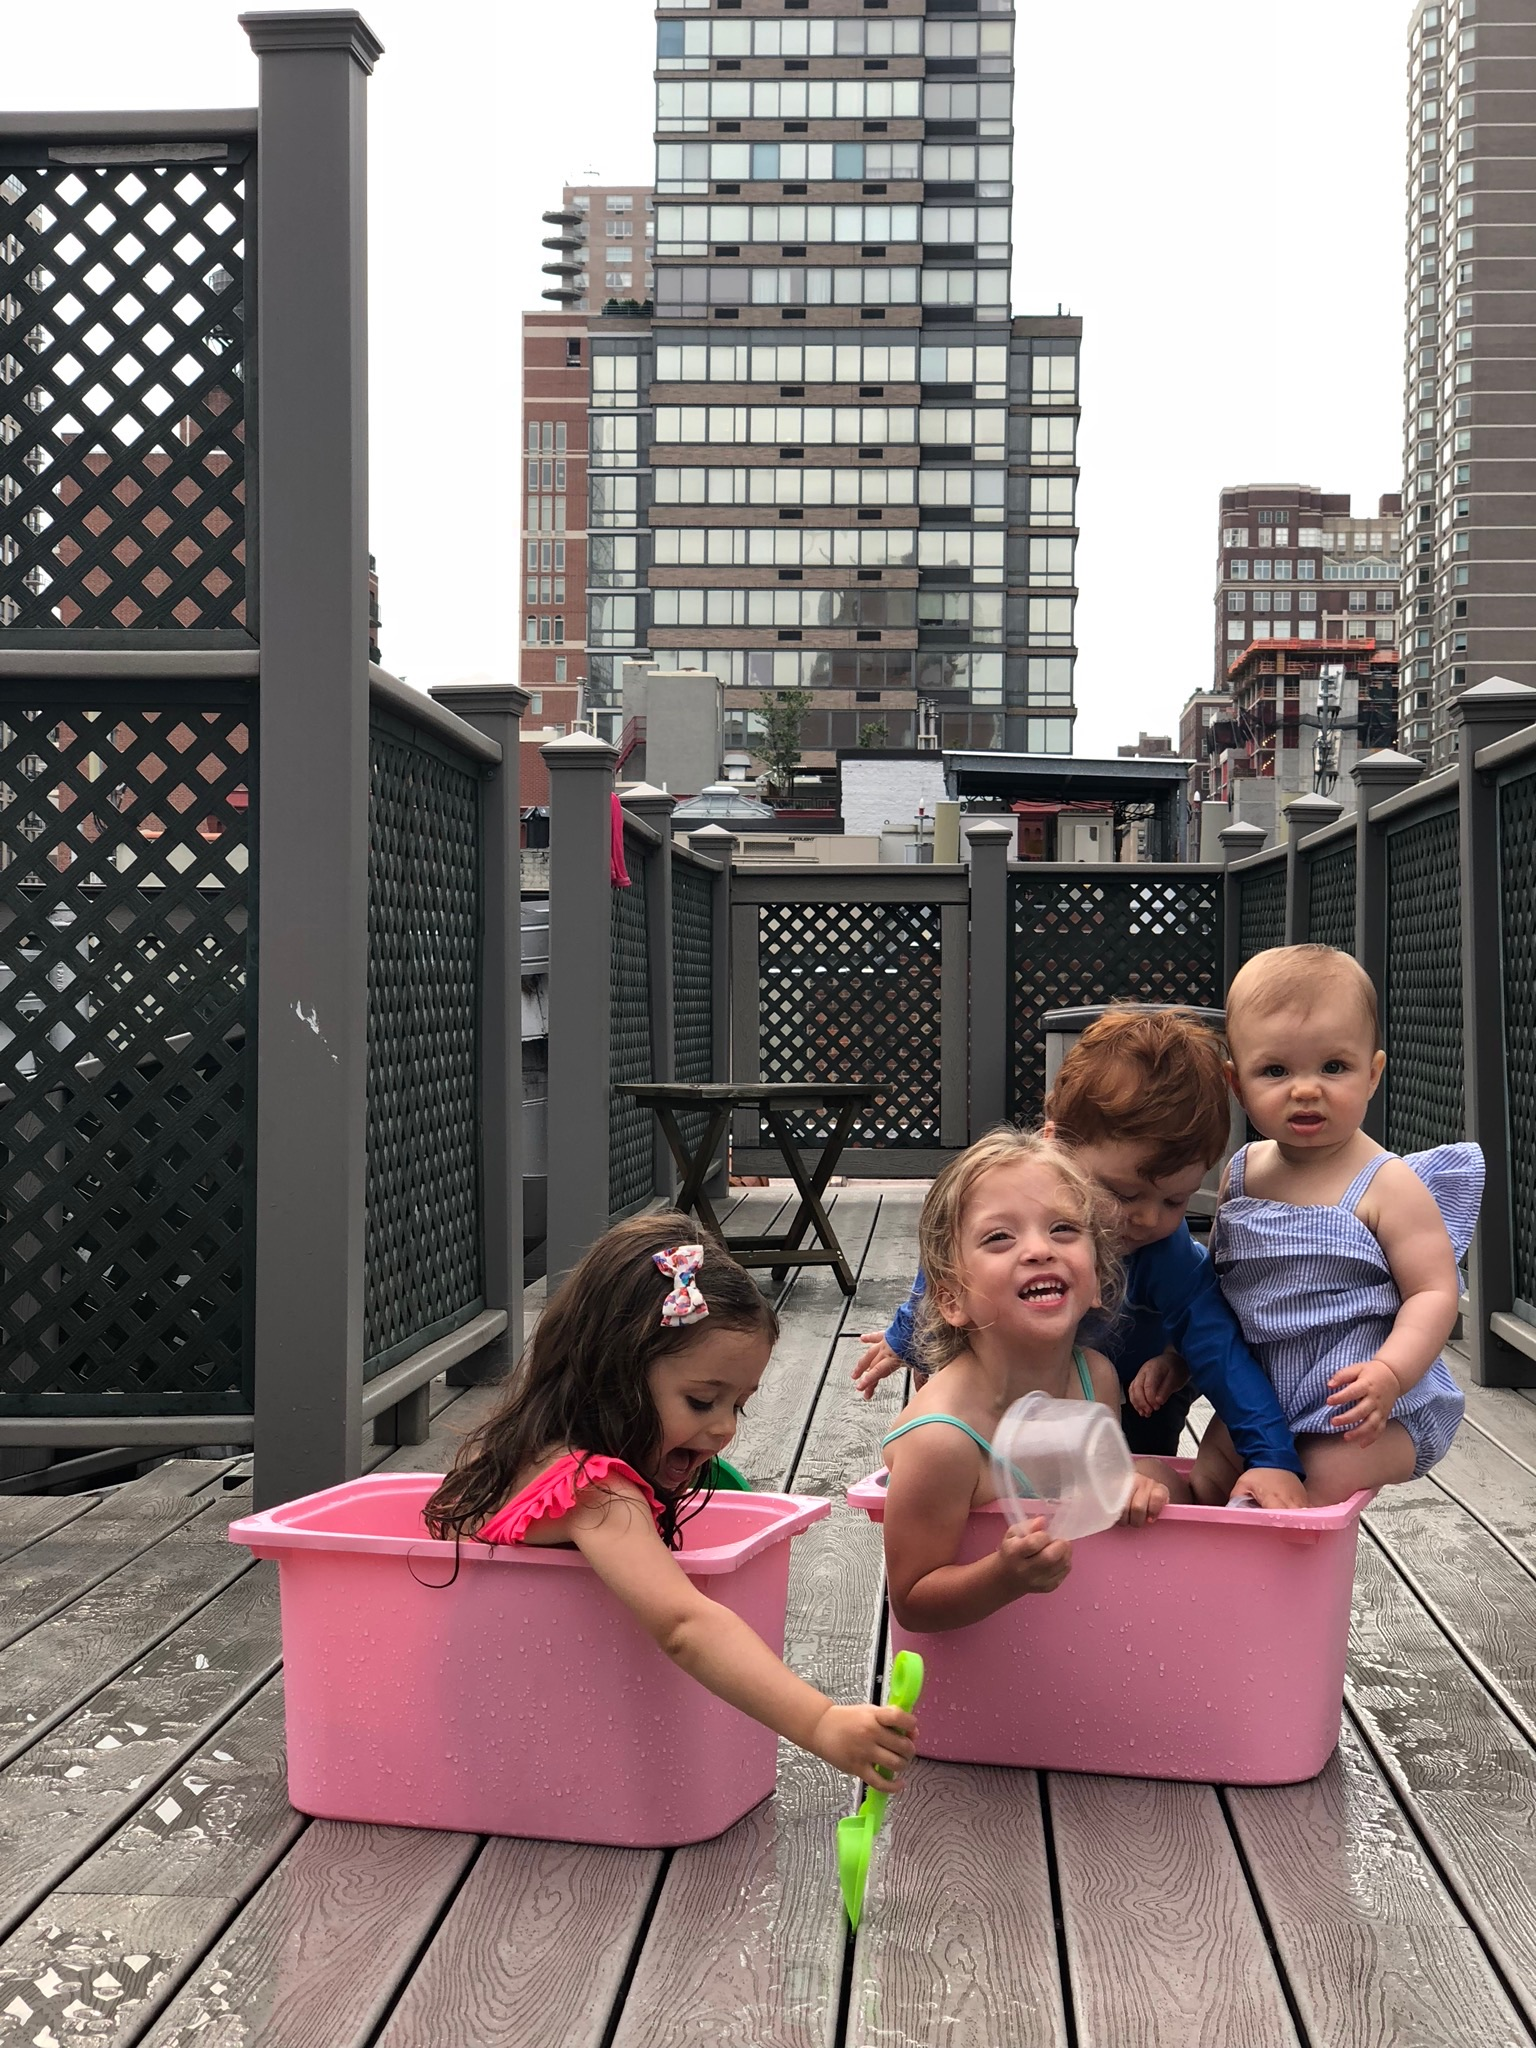 Later that evening we hung out on the Thomases rooftop and cooled off with water and buckets!